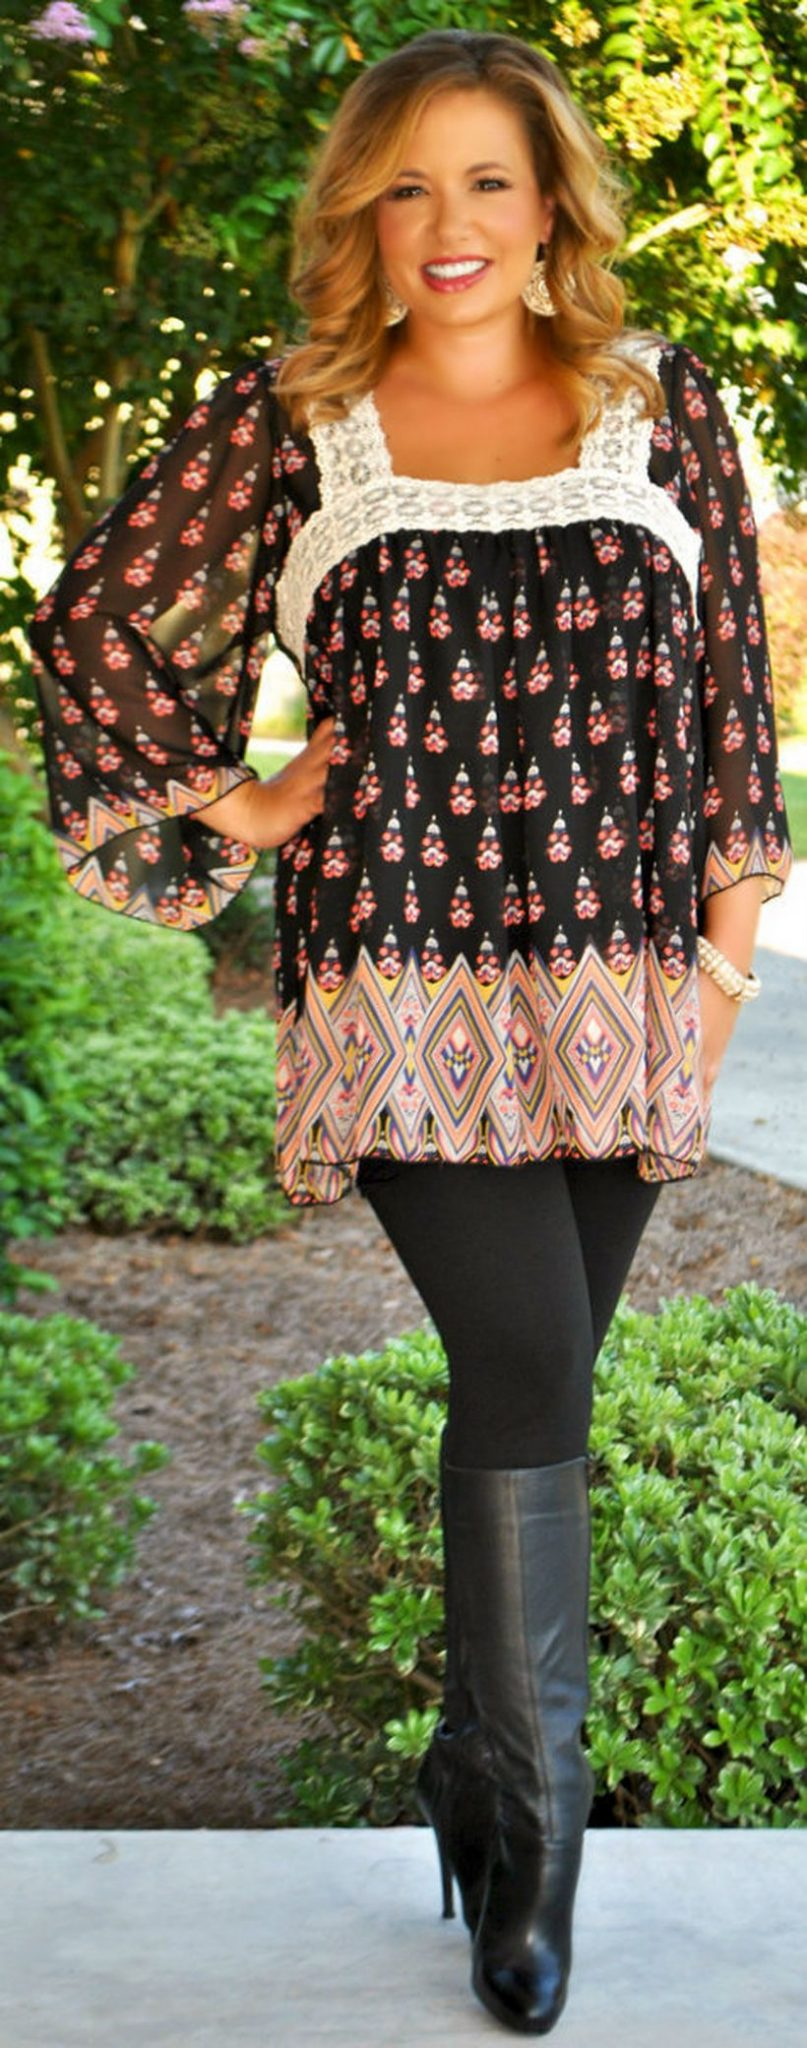 Stylish plus size outfits for winter 2017 110